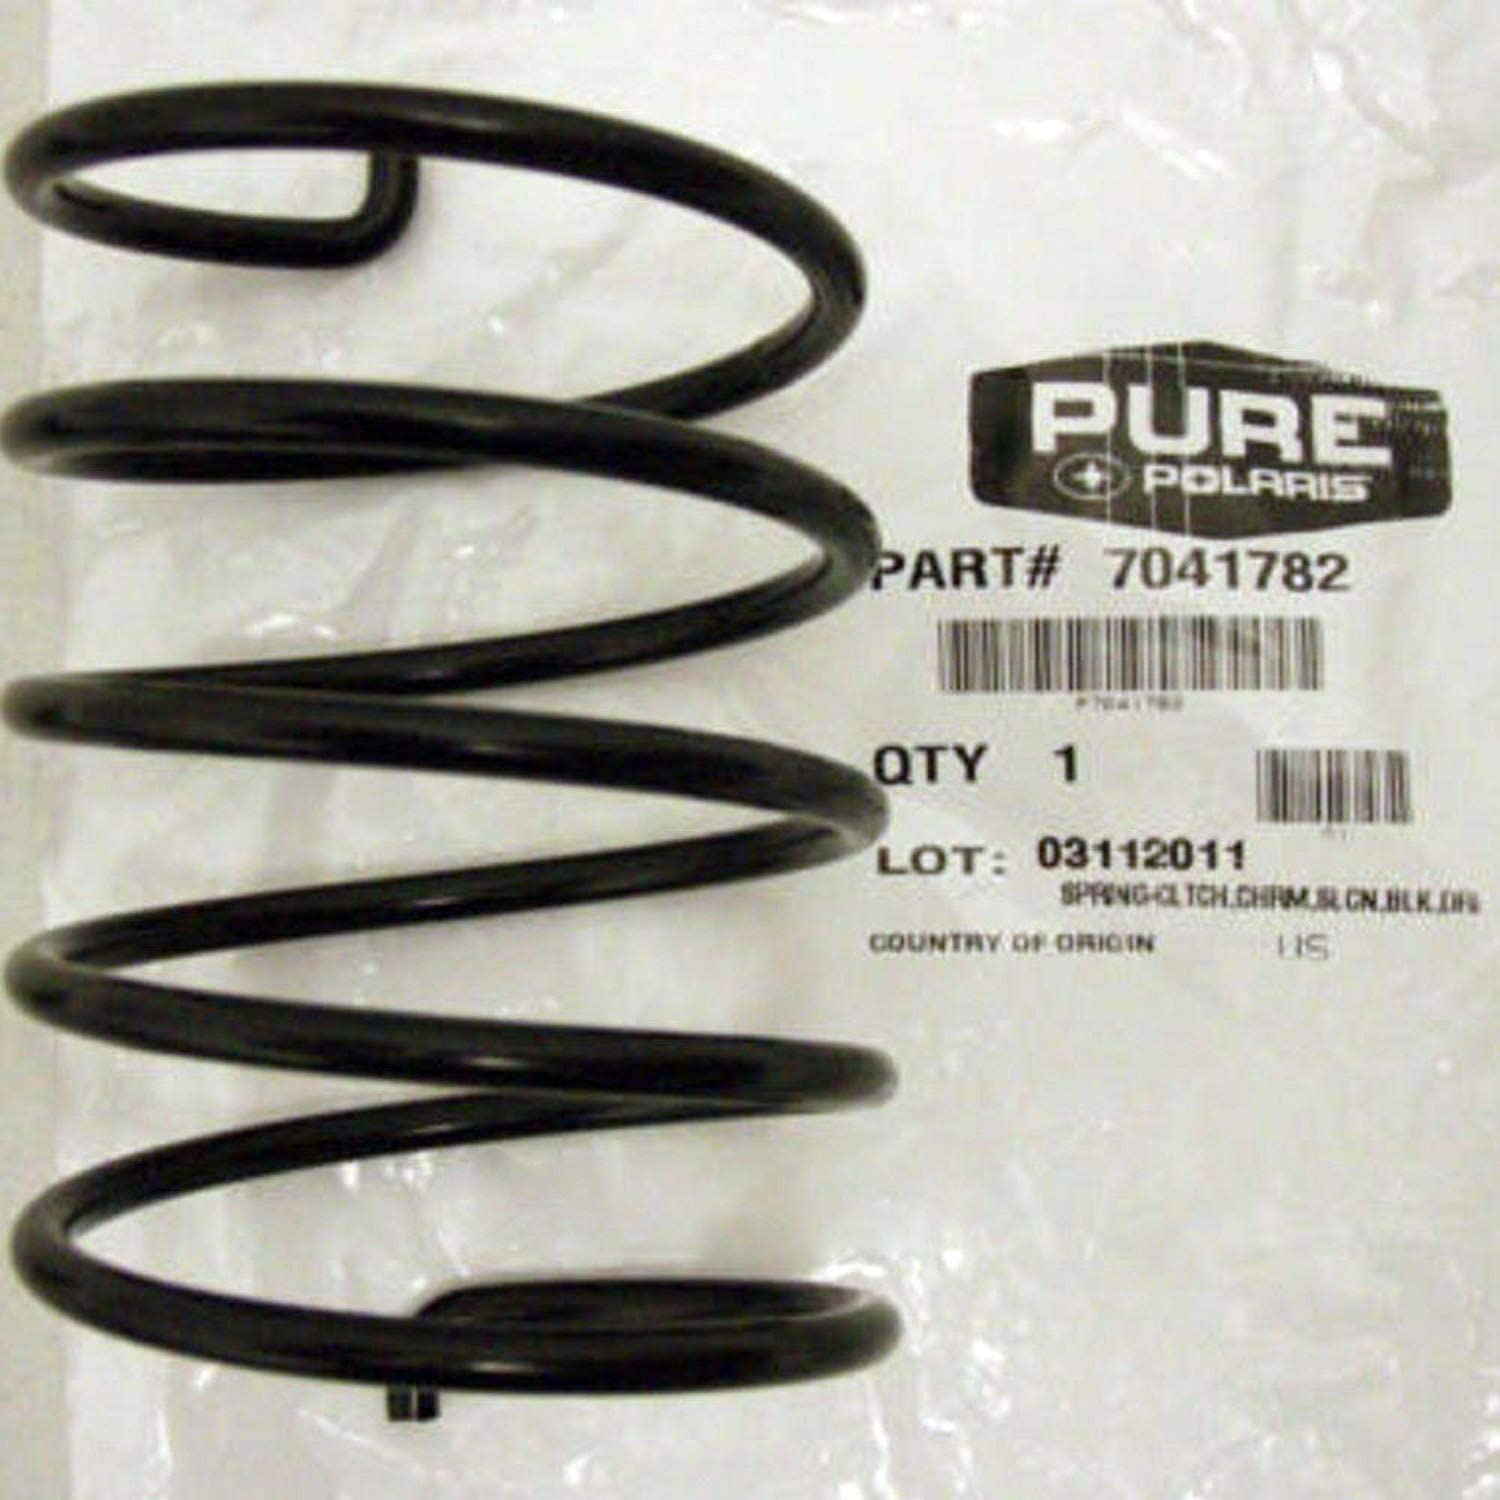 Polaris OEM ATV//UTV Driven Secondary Clutch Spring Ranger Sportsman 7041782 Black Magnum